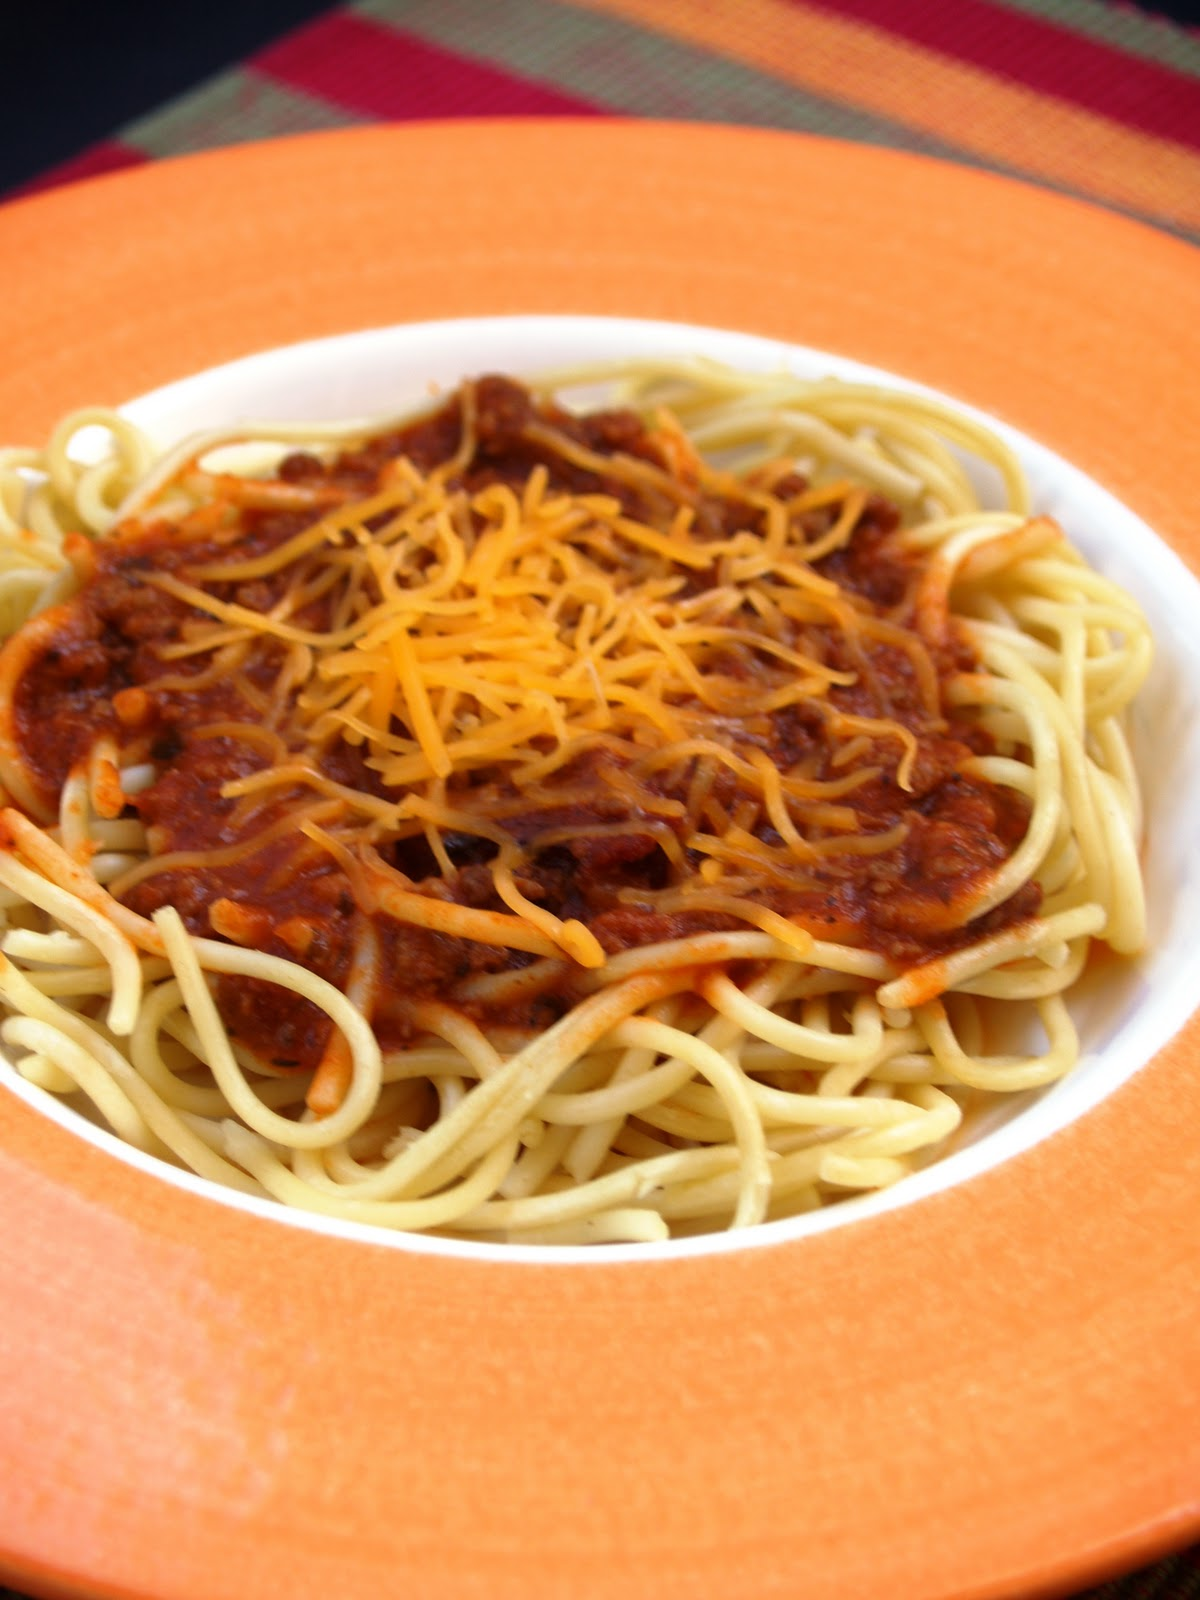 Pour It Over A Bowl Of Cooked Spaghetti Noodles Grate Some Cheddar Cheese On Top Voila That S Filipino Spaghetti For You It S Sweet And Tangy